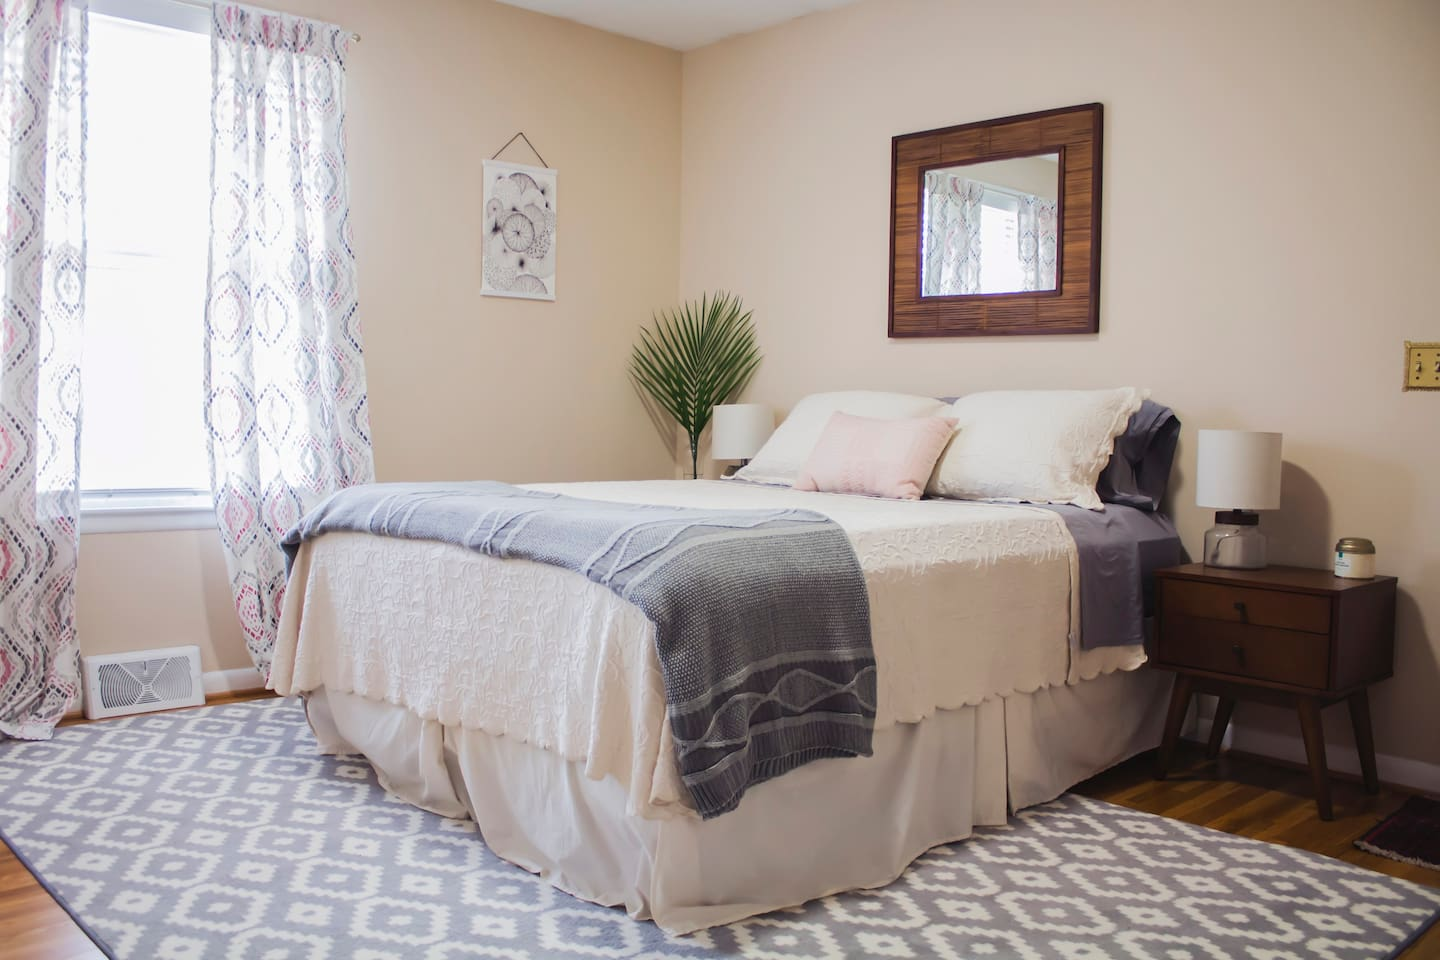 Your room! Cozy organic cotton sheets ensure a great night's sleep!